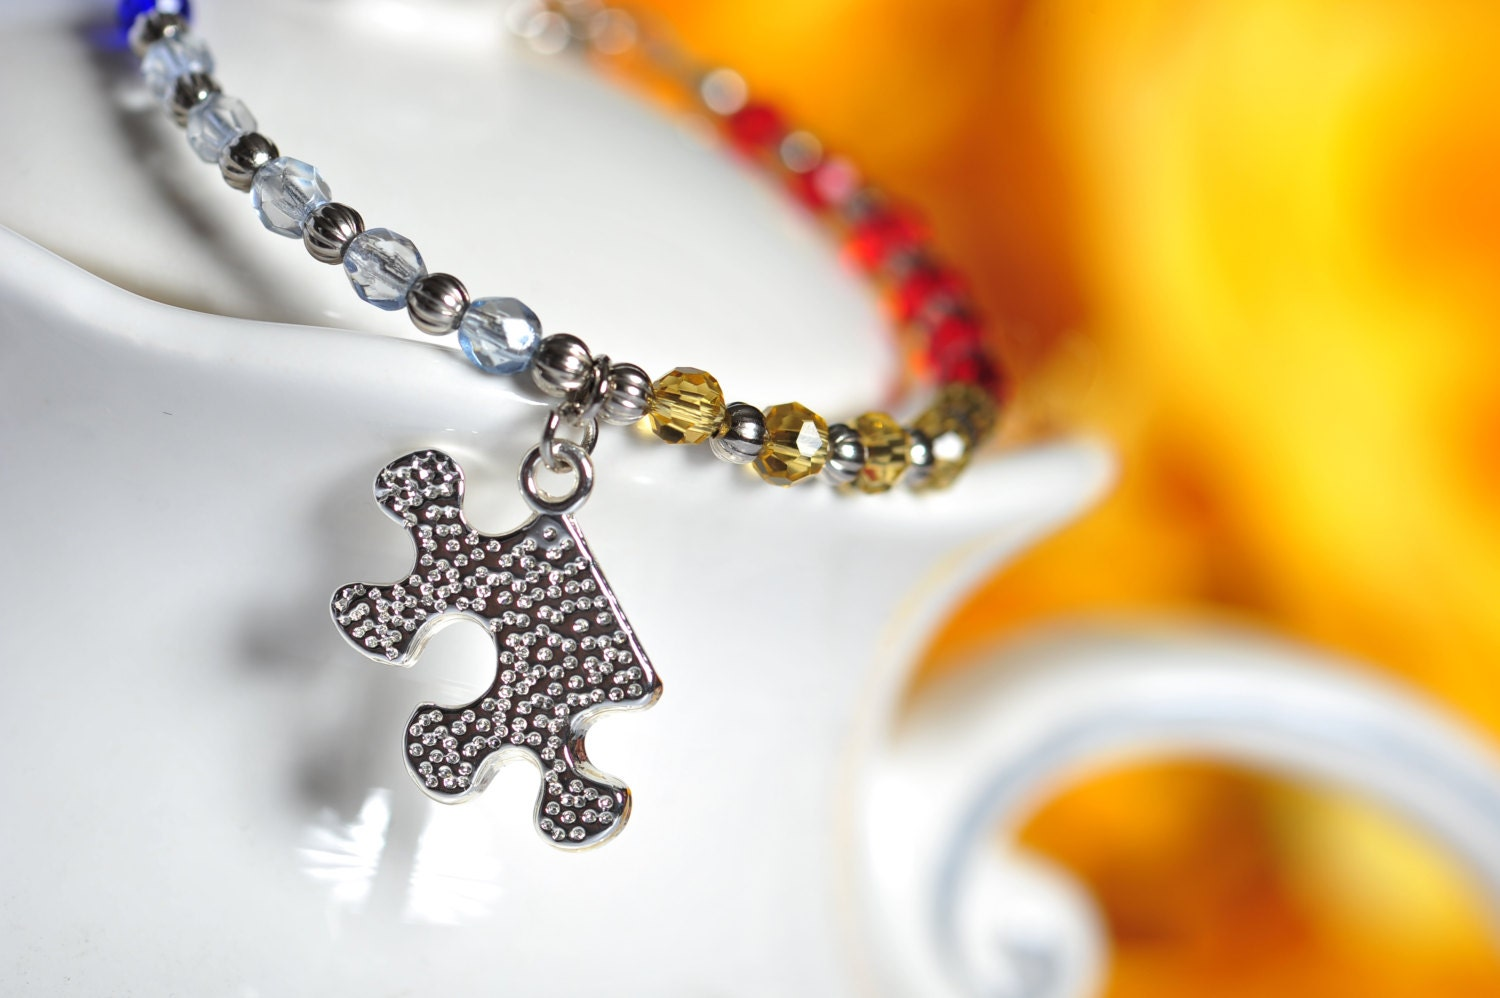 Celestial Crystals Autism Bracelet - Autism Color Crystals - Free Shipping - CreativeDesignsByEJ